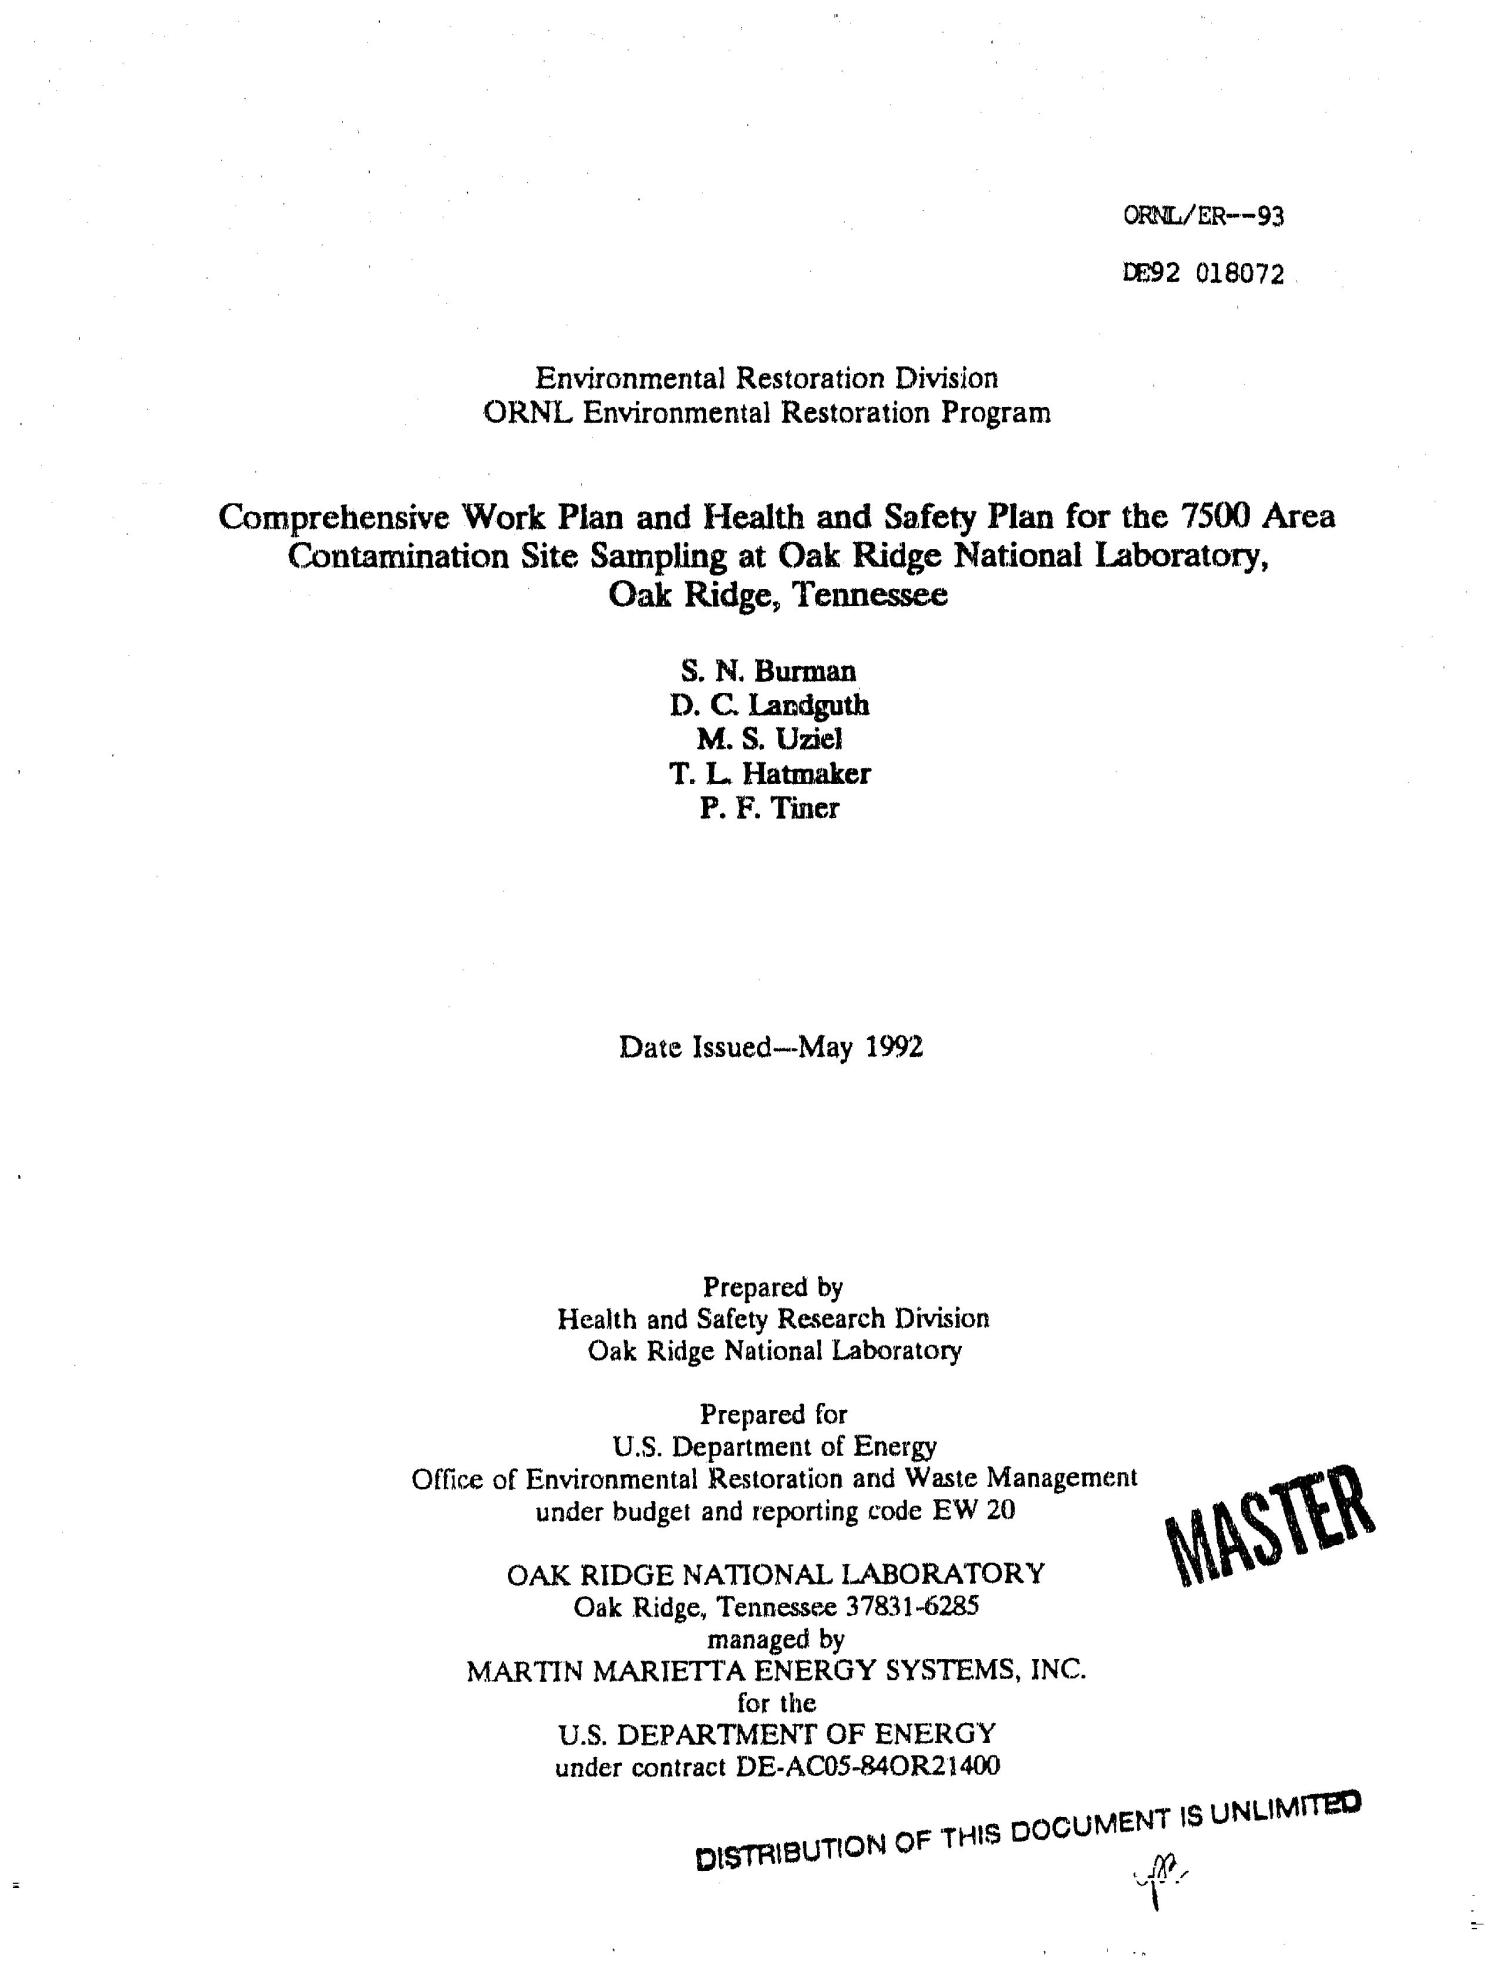 Comprehensive work plan and health and safety plan for the 7500 Area Contamination Site sampling at Oak Ridge National Laboratory, Oak Ridge, Tennessee                                                                                                      [Sequence #]: 1 of 163